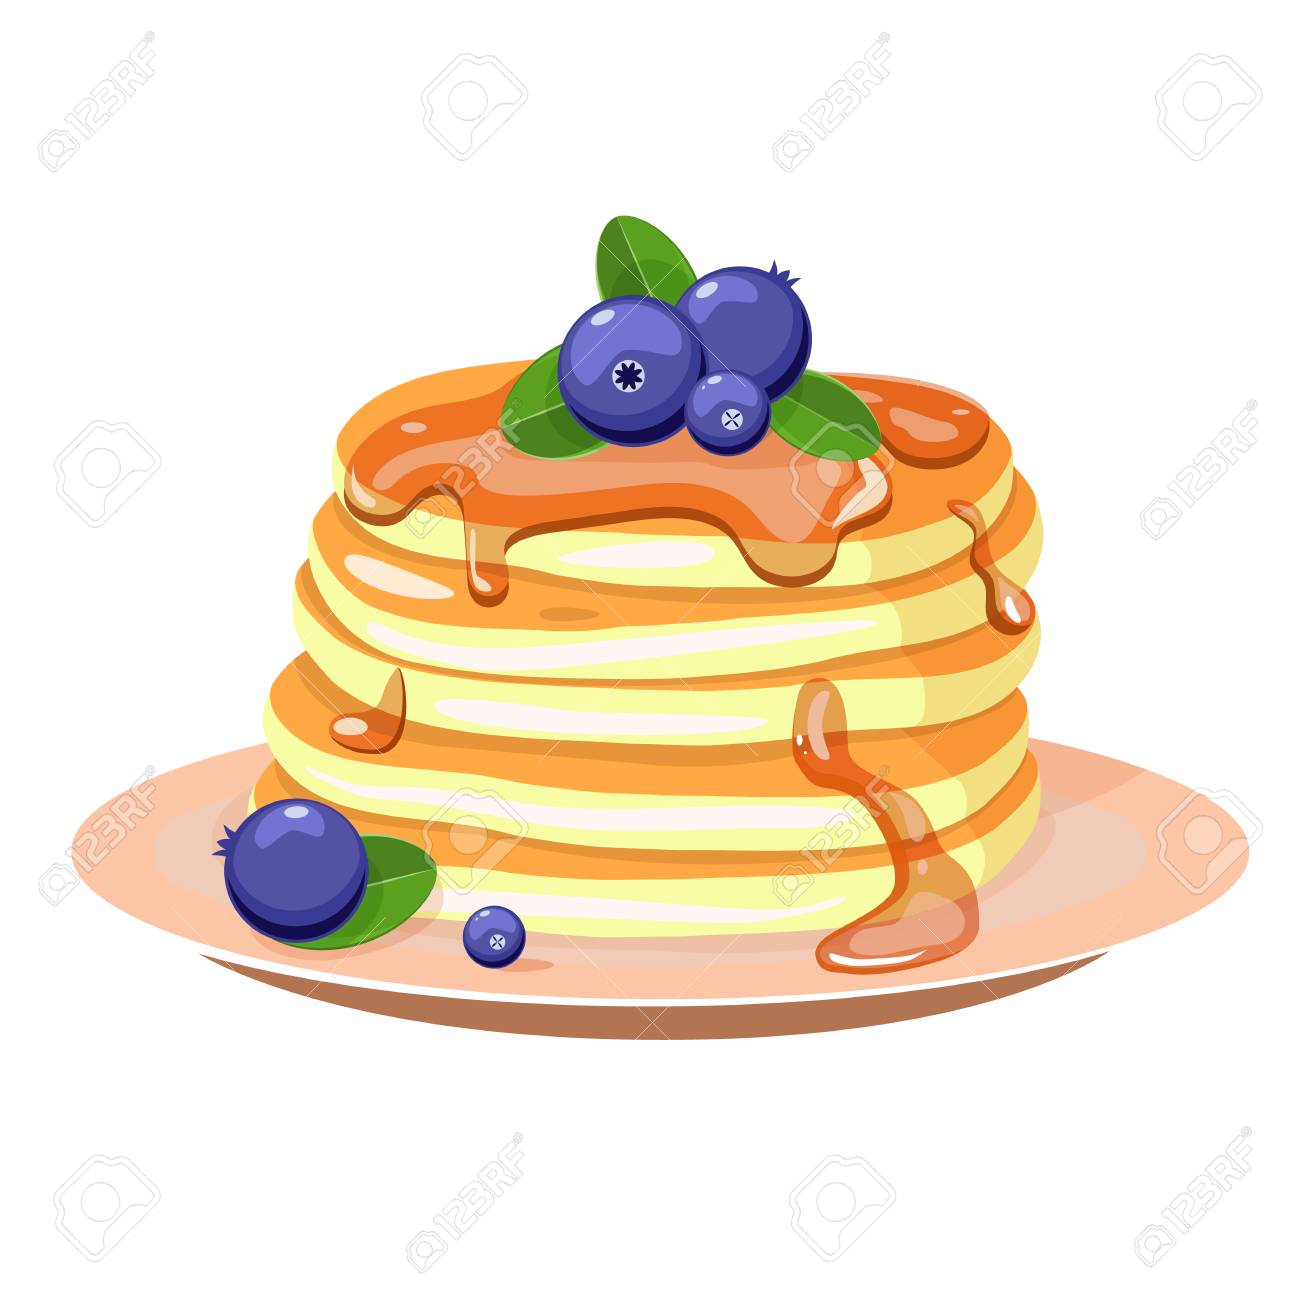 Pancakes with blueberry and mint leaves. Vector illustration. - 93568749